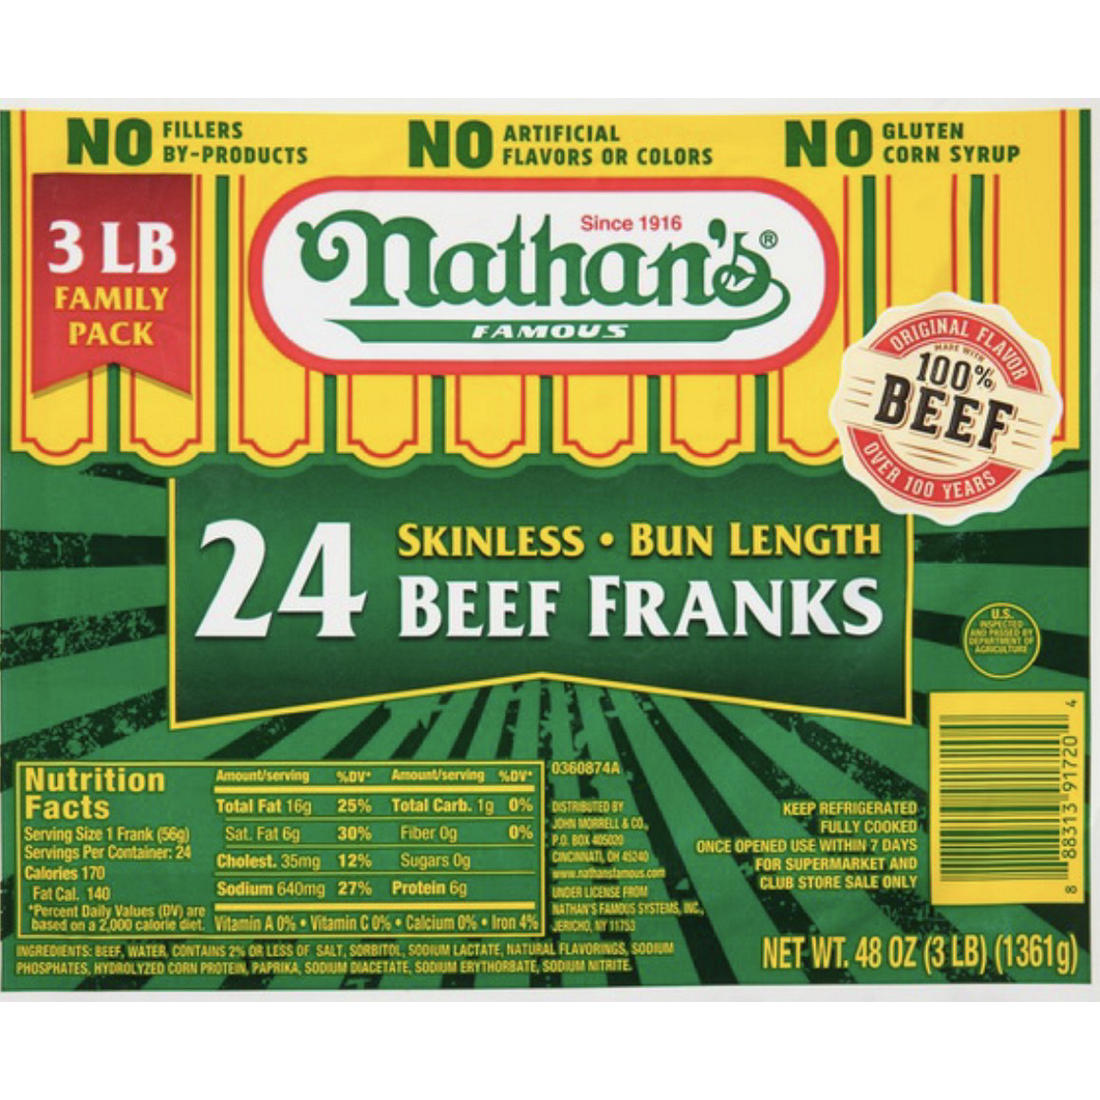 photo about Nathans Printable Coupons identify Nathans Well-known Skinless Beef Franks, 3 pounds.